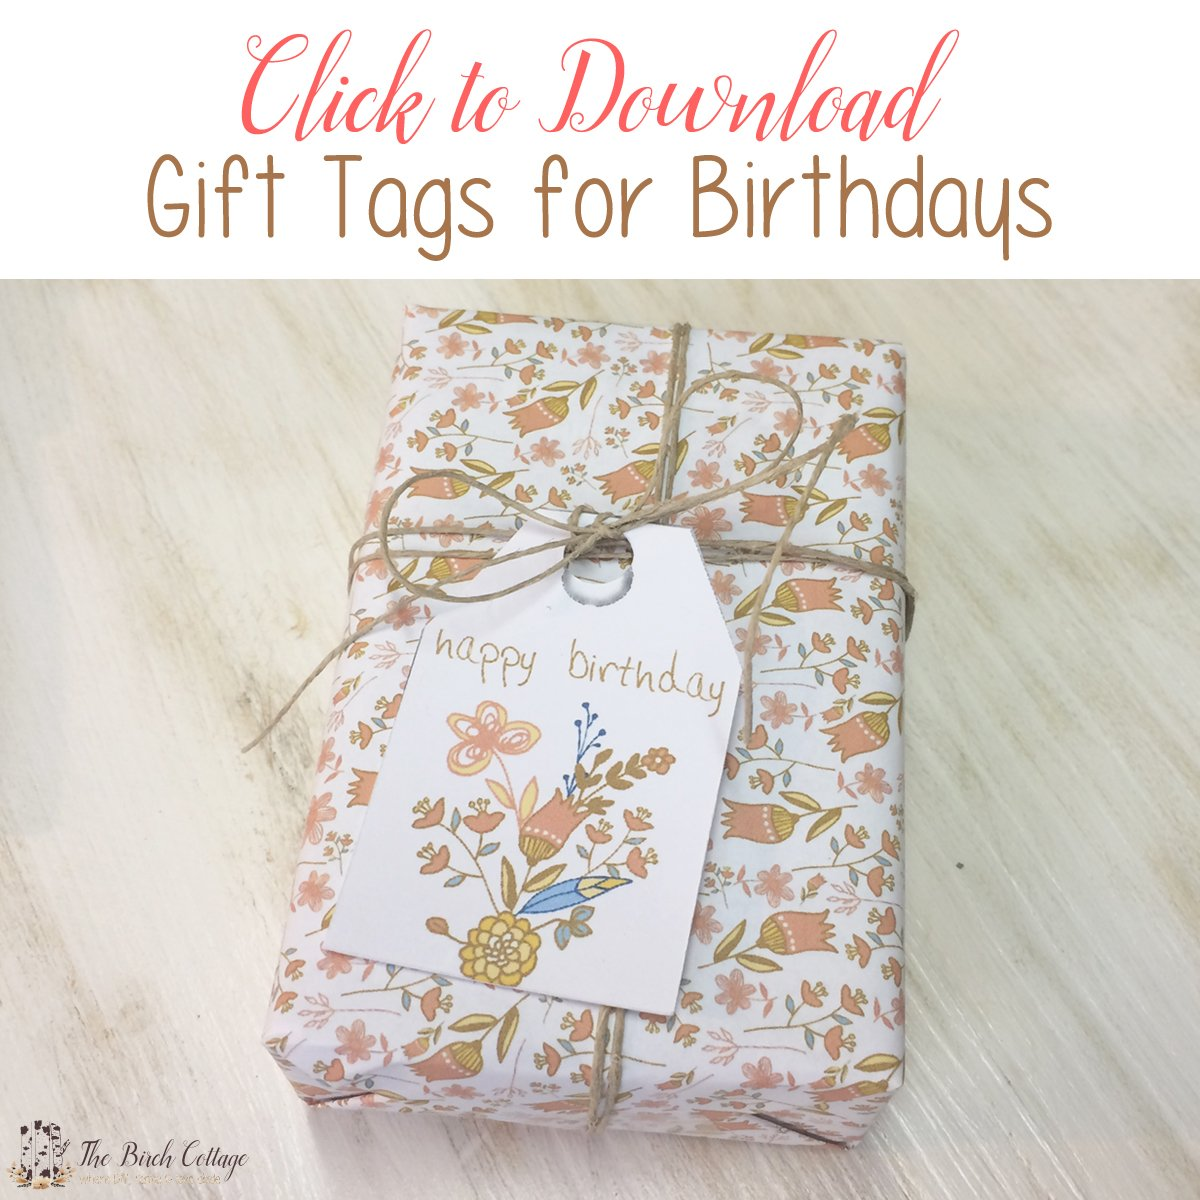 Free printable birthday gift tags just for you the birch cottage download your large free printable birthday gift tags from the birch cottage negle